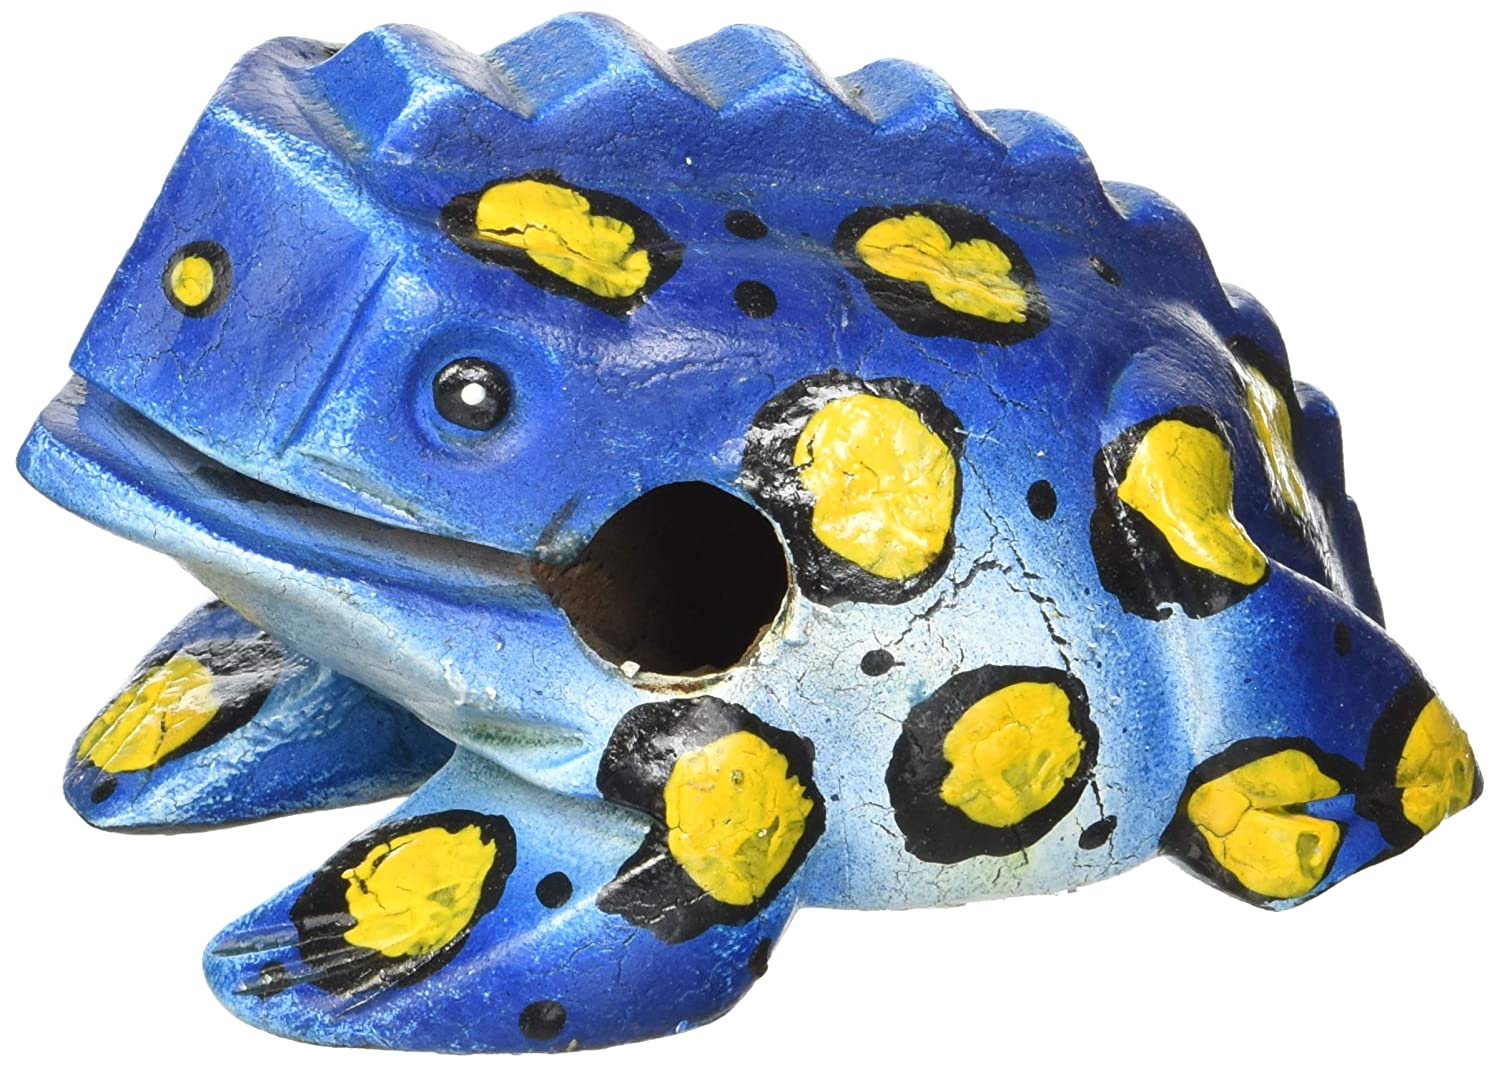 Unique Thailand 5 inch Hand Carved Wooden Frog Musical Instrument Tone Block (Blue) BLUE5